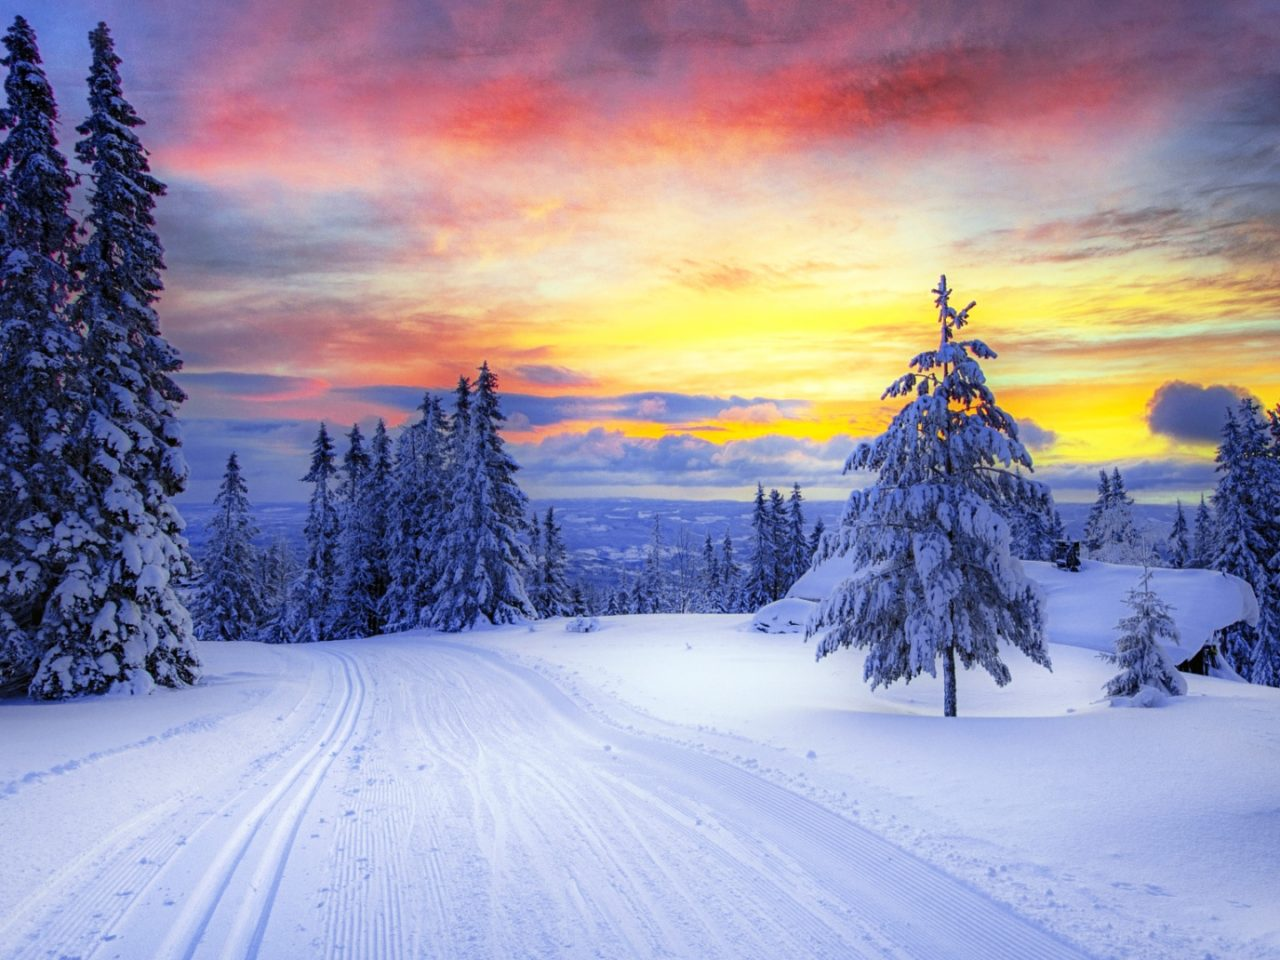 Mountain Iphone Wallpaper Norway Winter Forest Snow Trees 1920x1080 Wallpapers13 Com